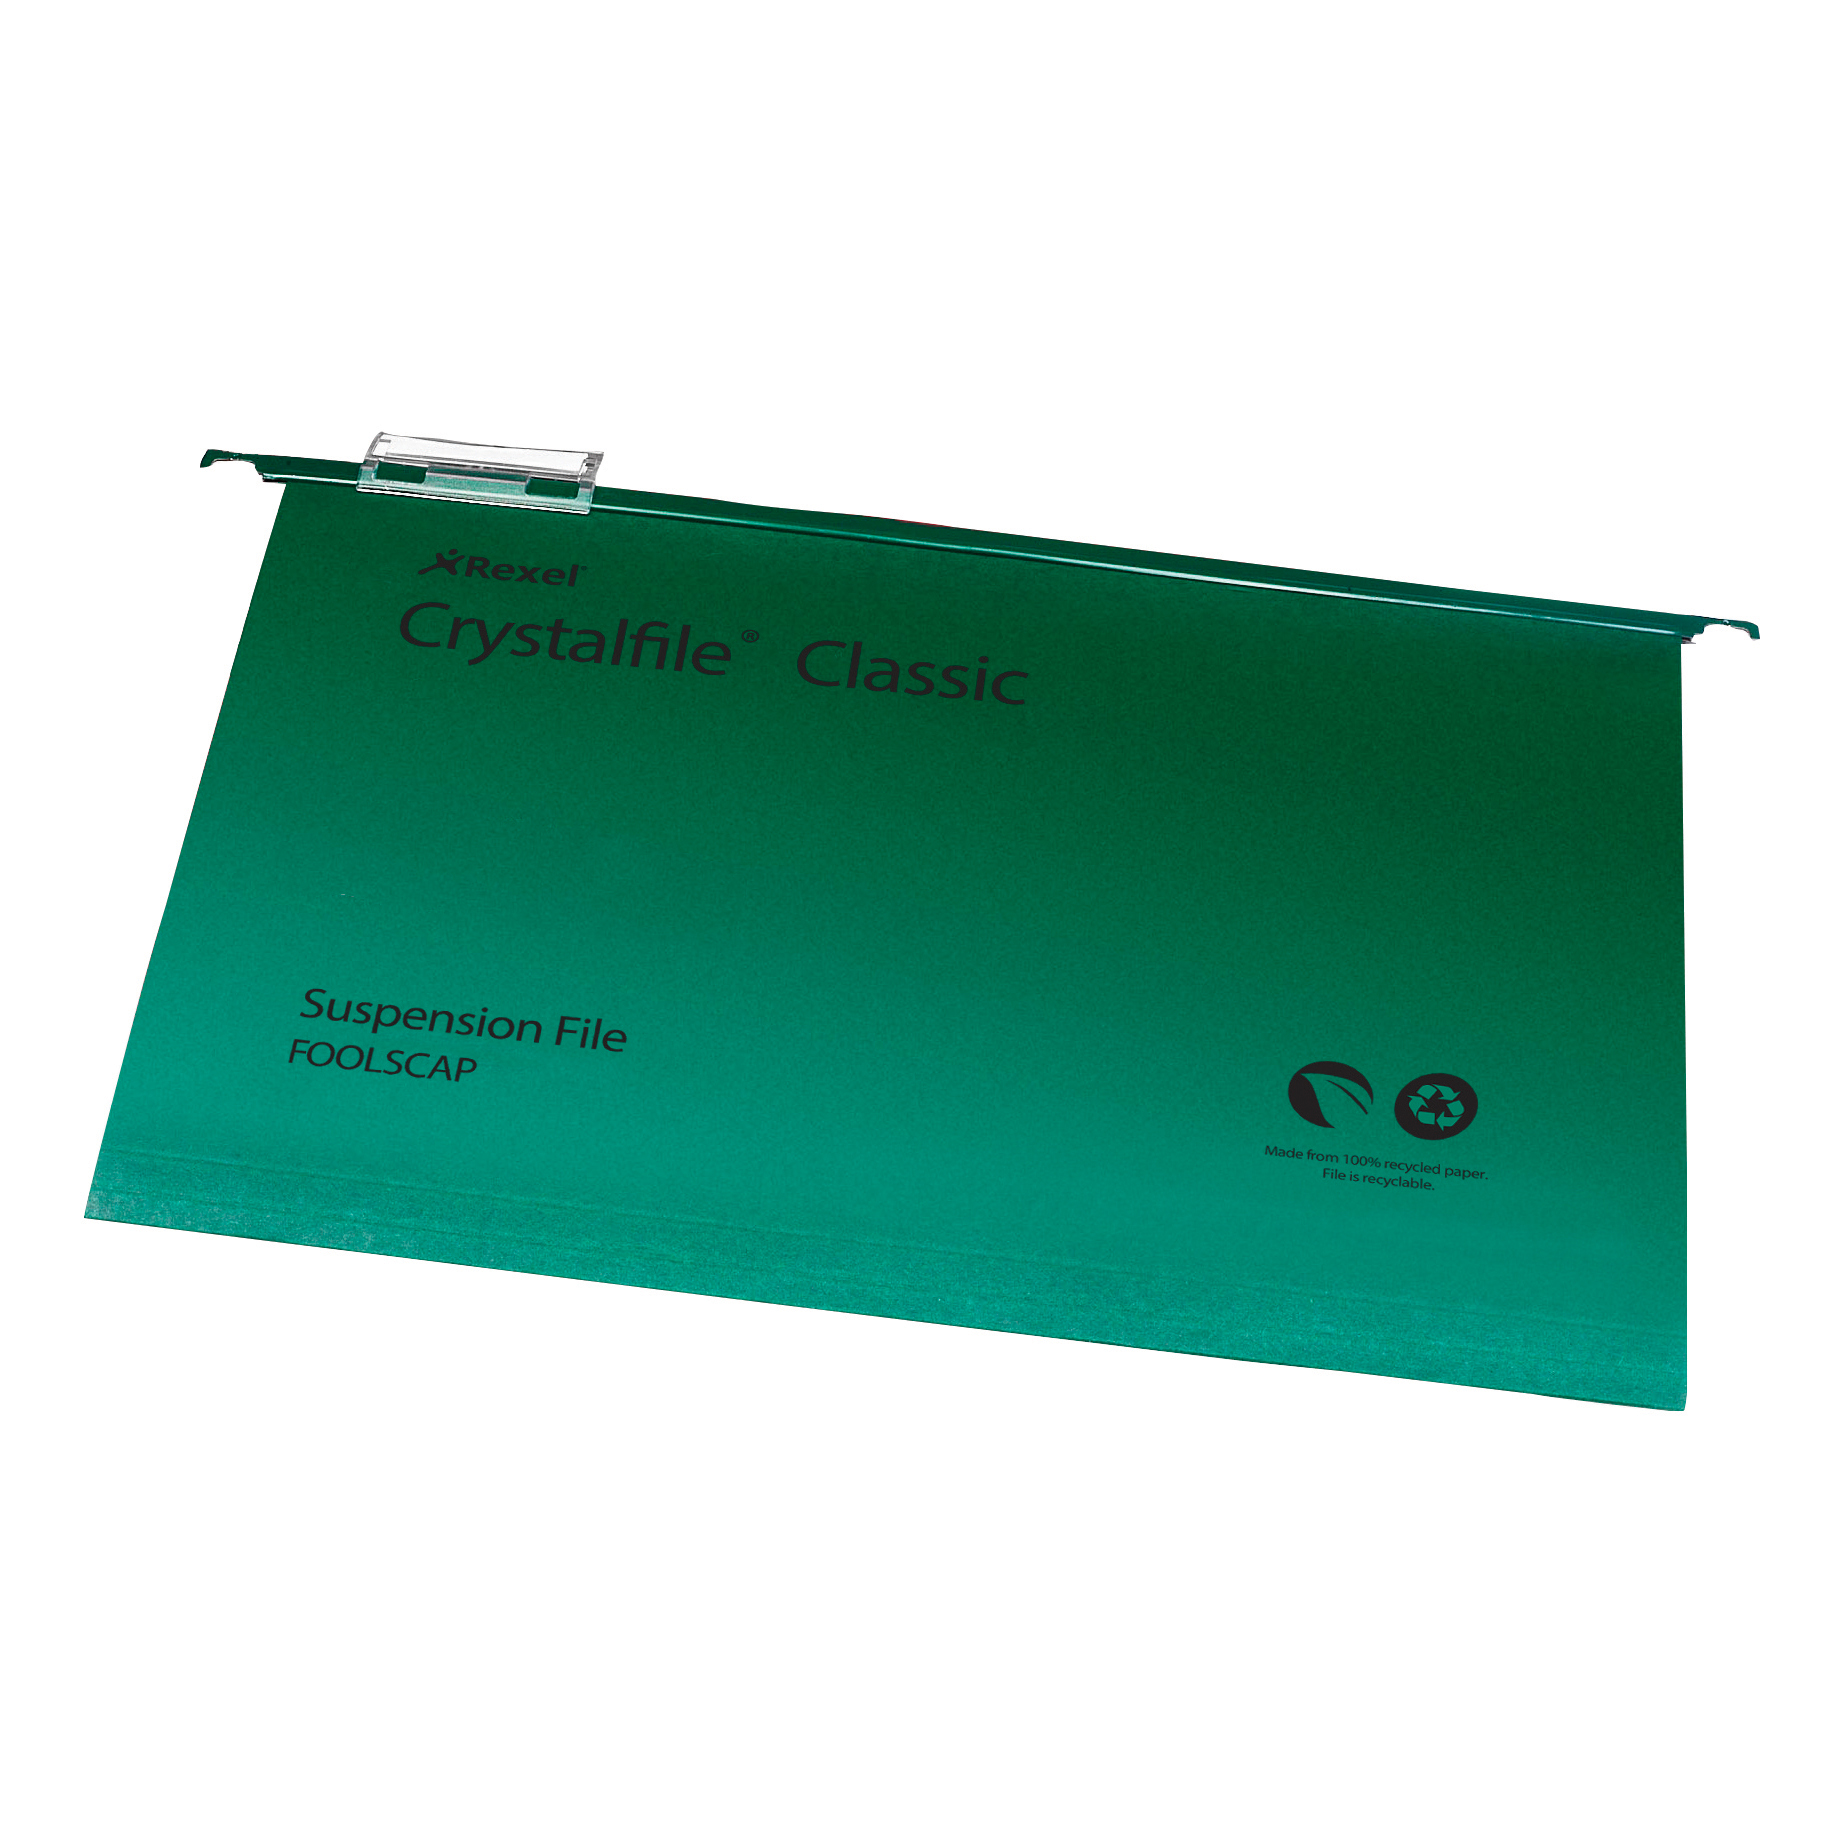 Suspension File Rexel Crystalfile Classic Suspension File Manilla V-base Foolscap Green Ref 78046 Pack 50